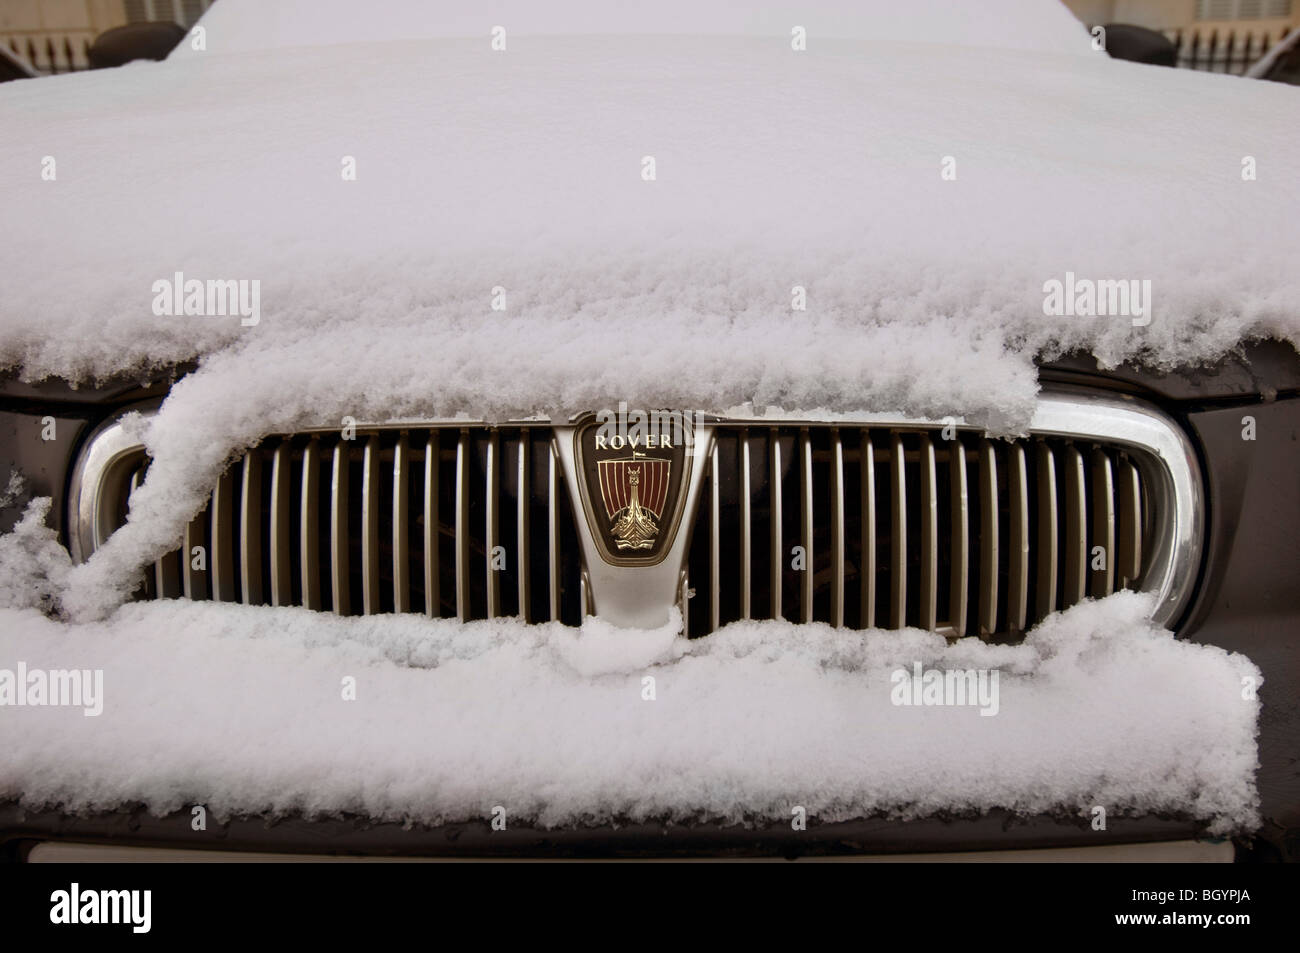 A snow covered Rover car showing the grille and badge - Stock Image